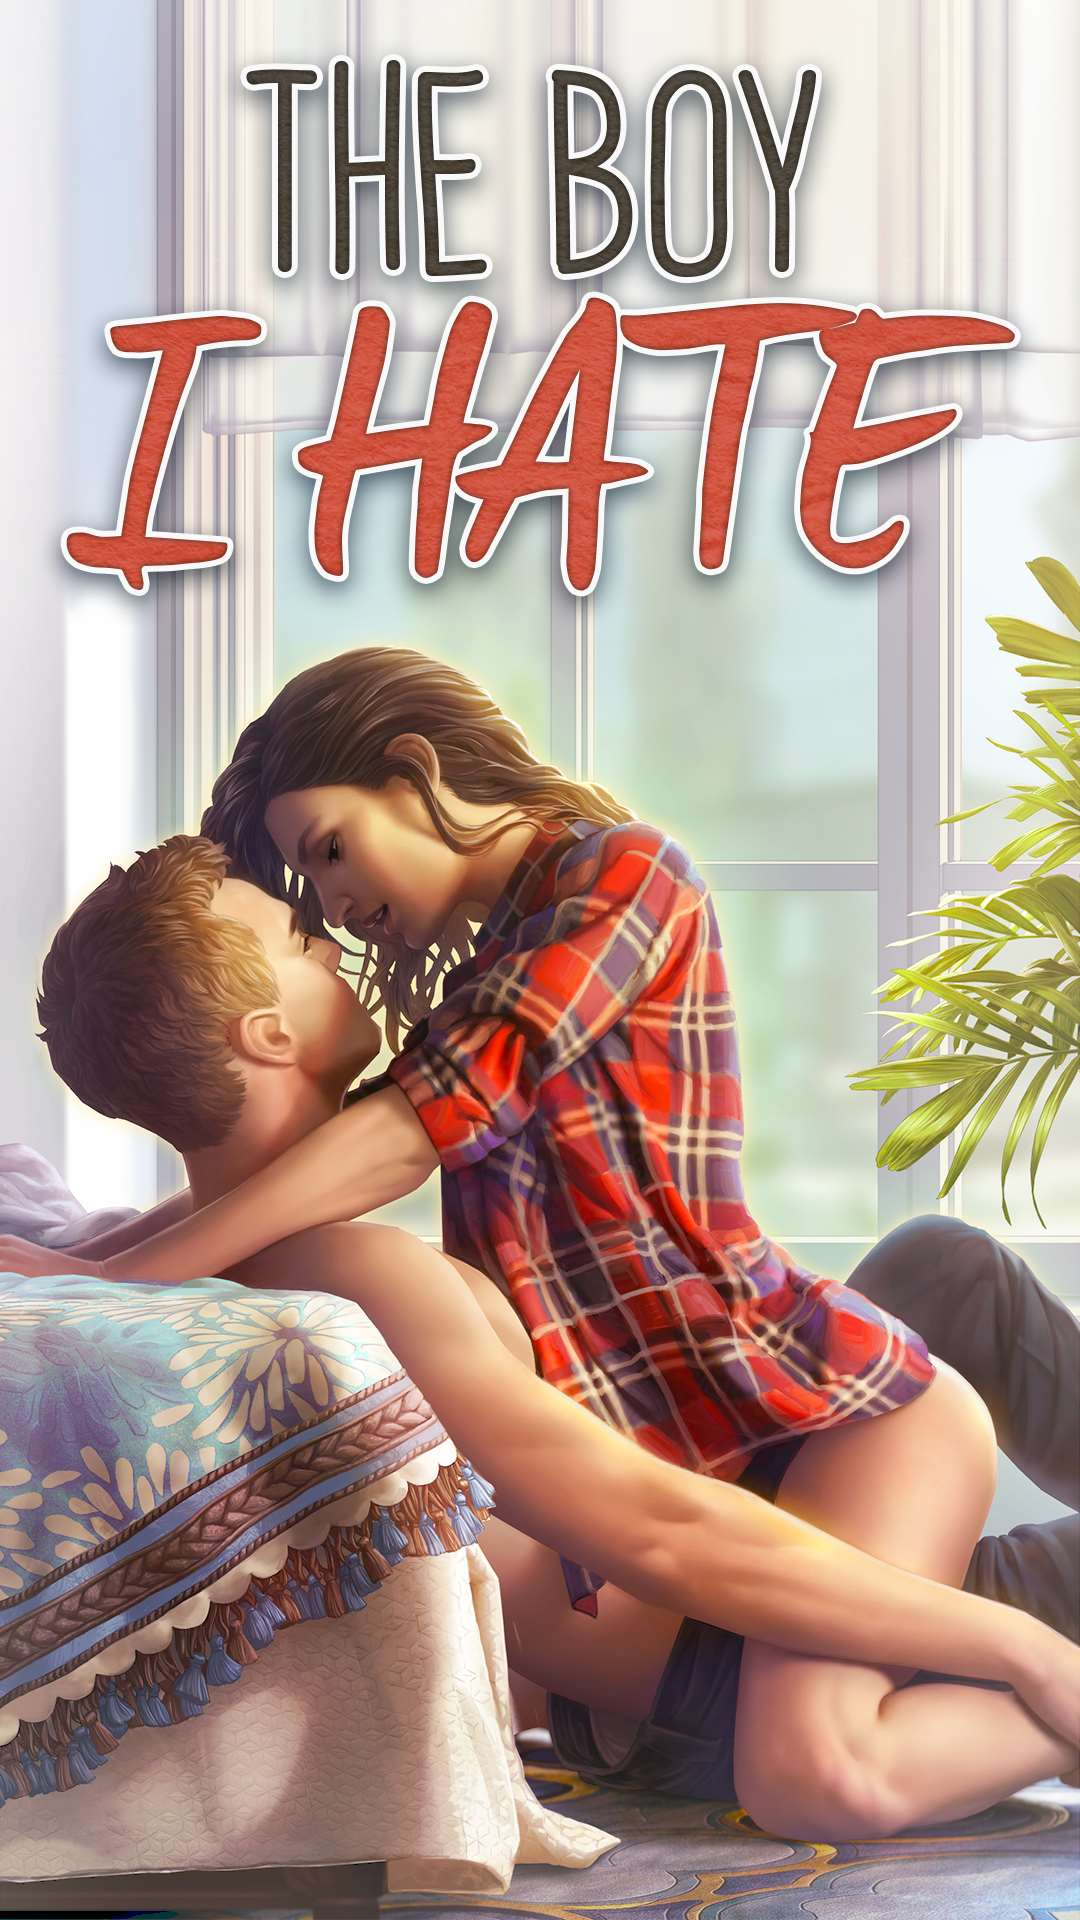 The Boy I Hate Chapters Interactive Stories Wiki Fandom His video 5 truly shocking & horrifying moments caught on camera went viral. the boy i hate chapters interactive